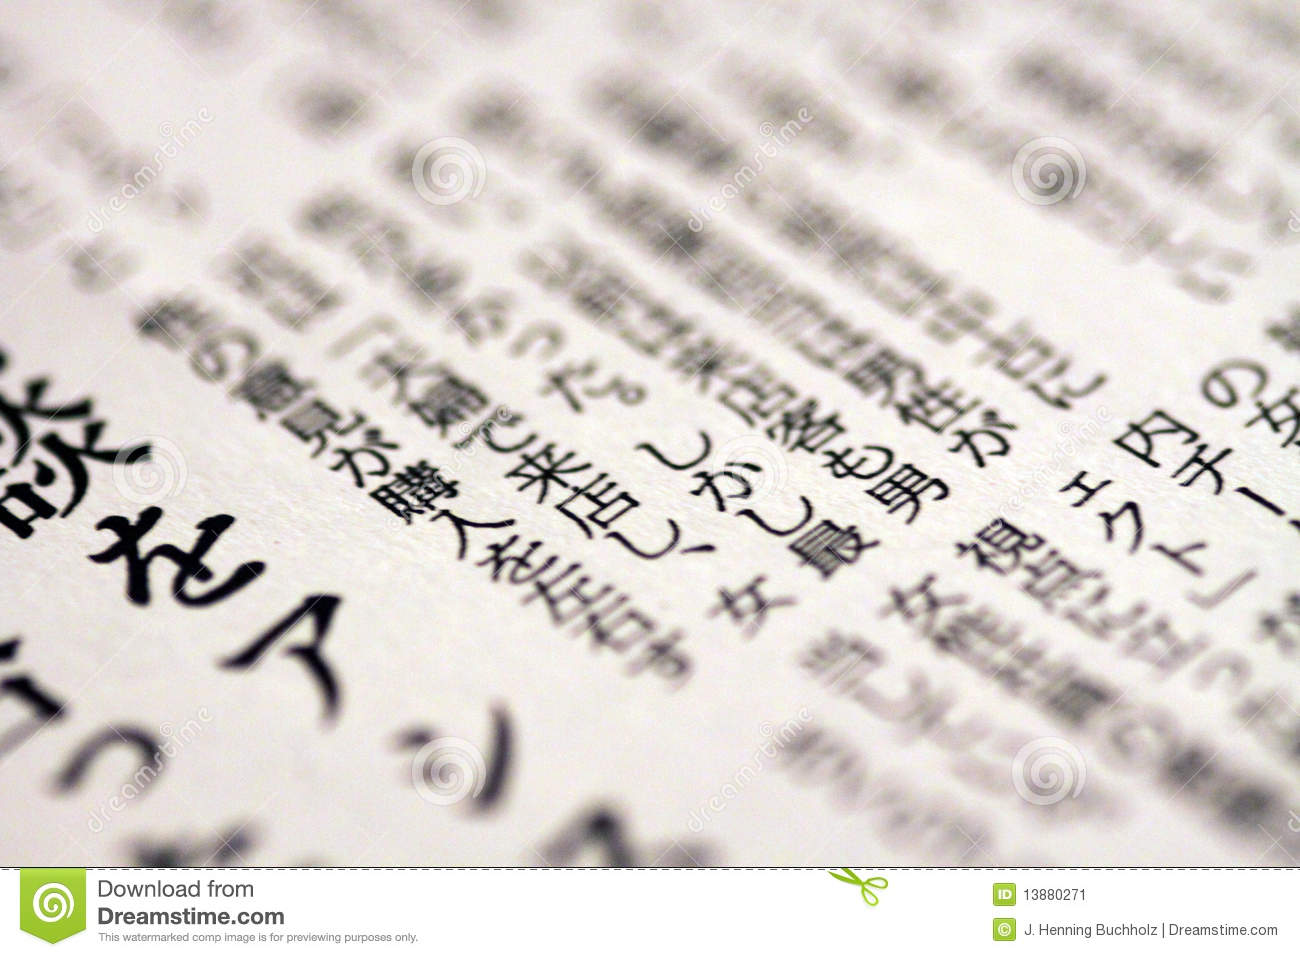 Chinese Symbols In A Newspaper Text Stock Illustration